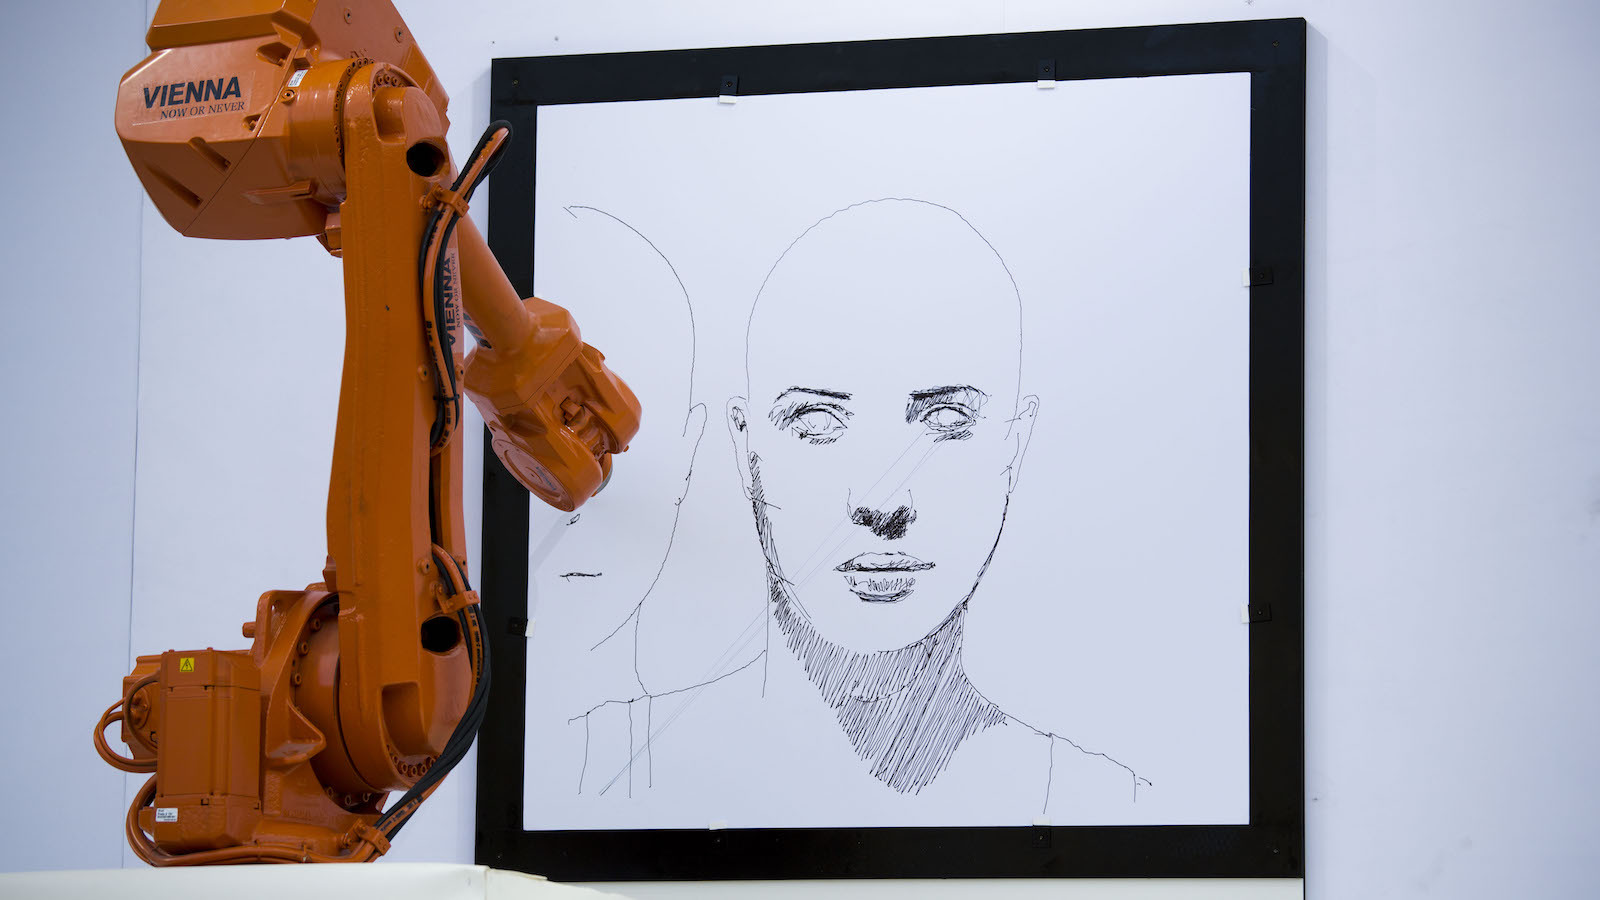 "A robot arm in Trafalgar Square, London, replicates  a drawing being created by Austrian artist Alex Kiessling  from Vienna, with another robot arm  simultaneously  replicating the work in Berlin, Thursday, Sept. 26, 2013.  The project has been given the title ""Long Distance Art"" and utilizes the IRB 4600 robotic arms, produced by the company ABB for industrial manufacturing in areas such as automotive, plastics, metal fabrication and electronics.  (AP Photo/Matt Dunham)"